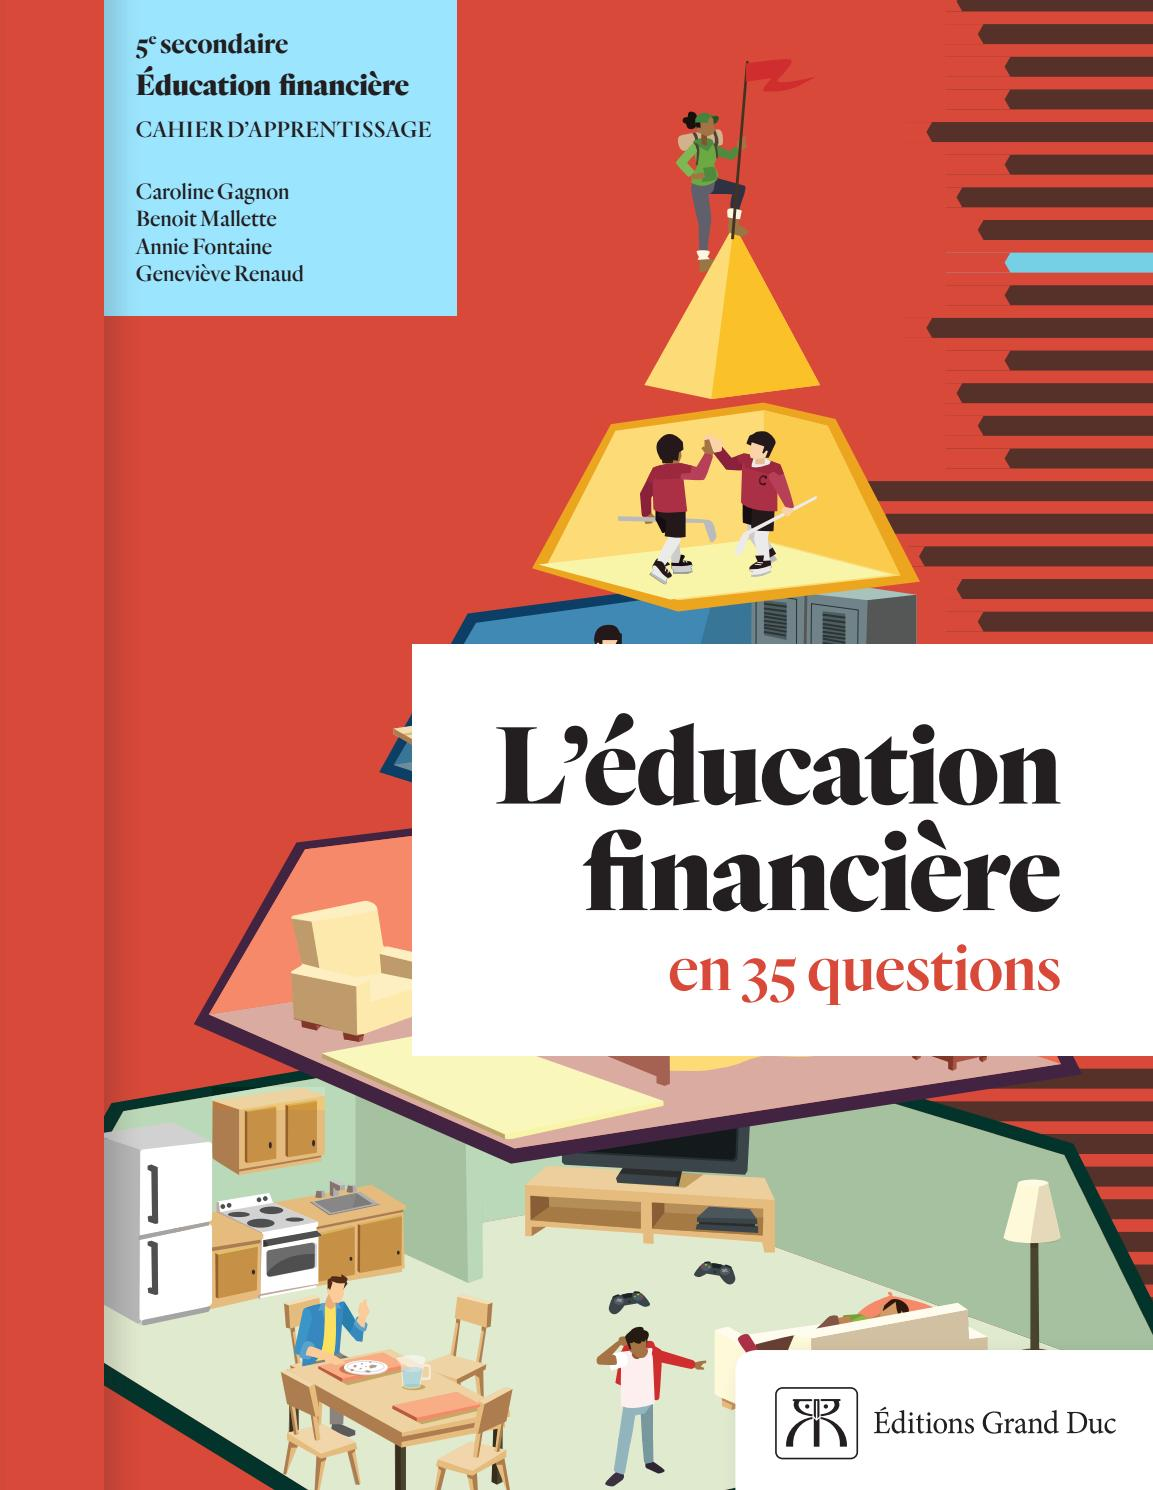 Educ Financiere Cahier Ch01 Quest 1 5 E1 Simple By Ditions Grand Duc